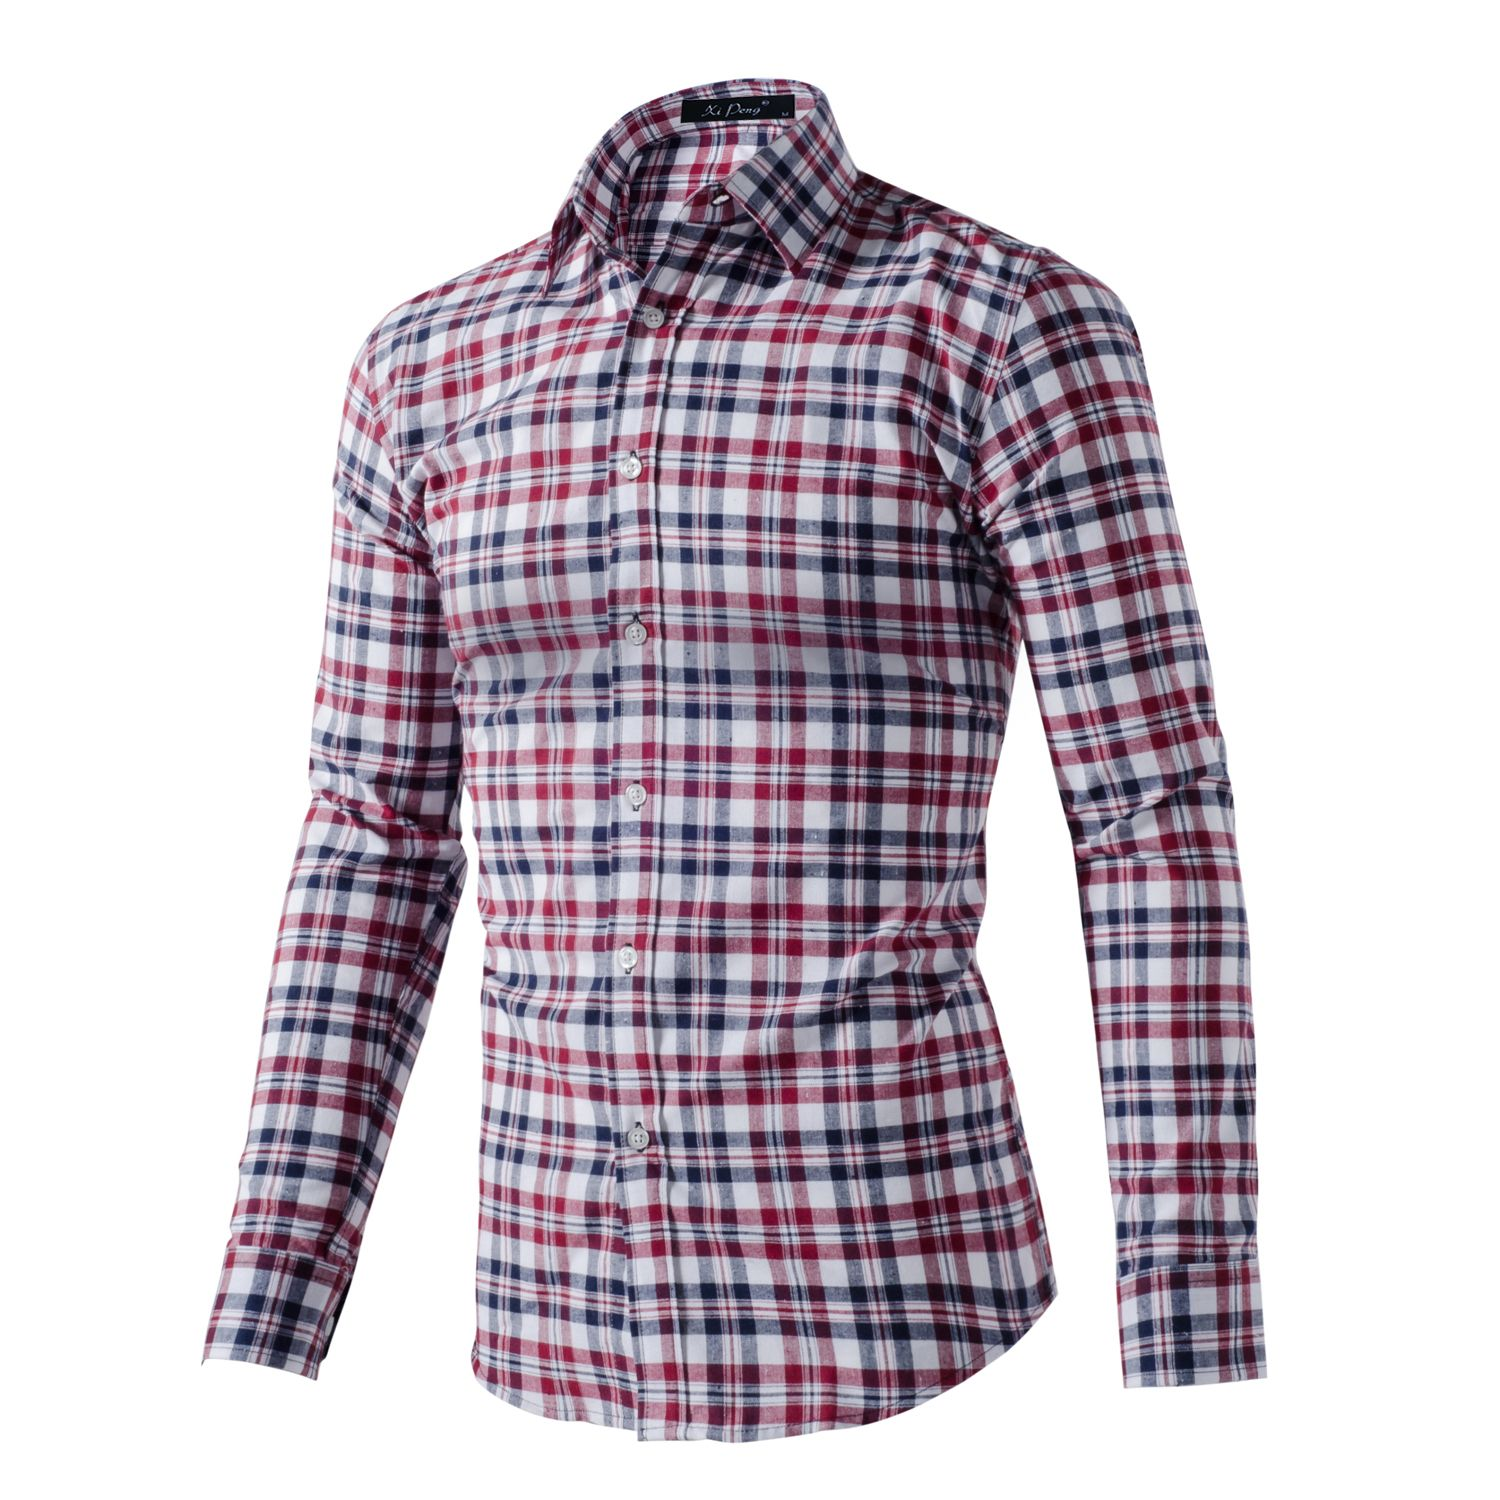 fitted long sleeve shirt pattern